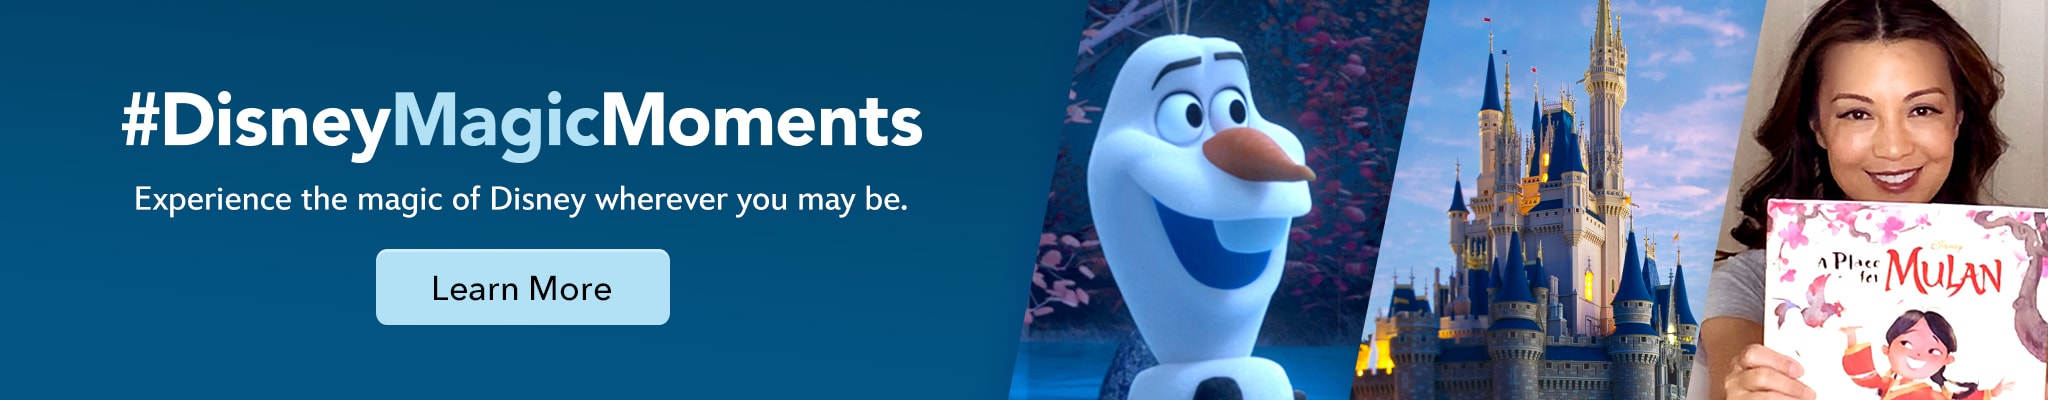 #DisneyMagicMoments - Experience the magic of Disney wherever you may be.